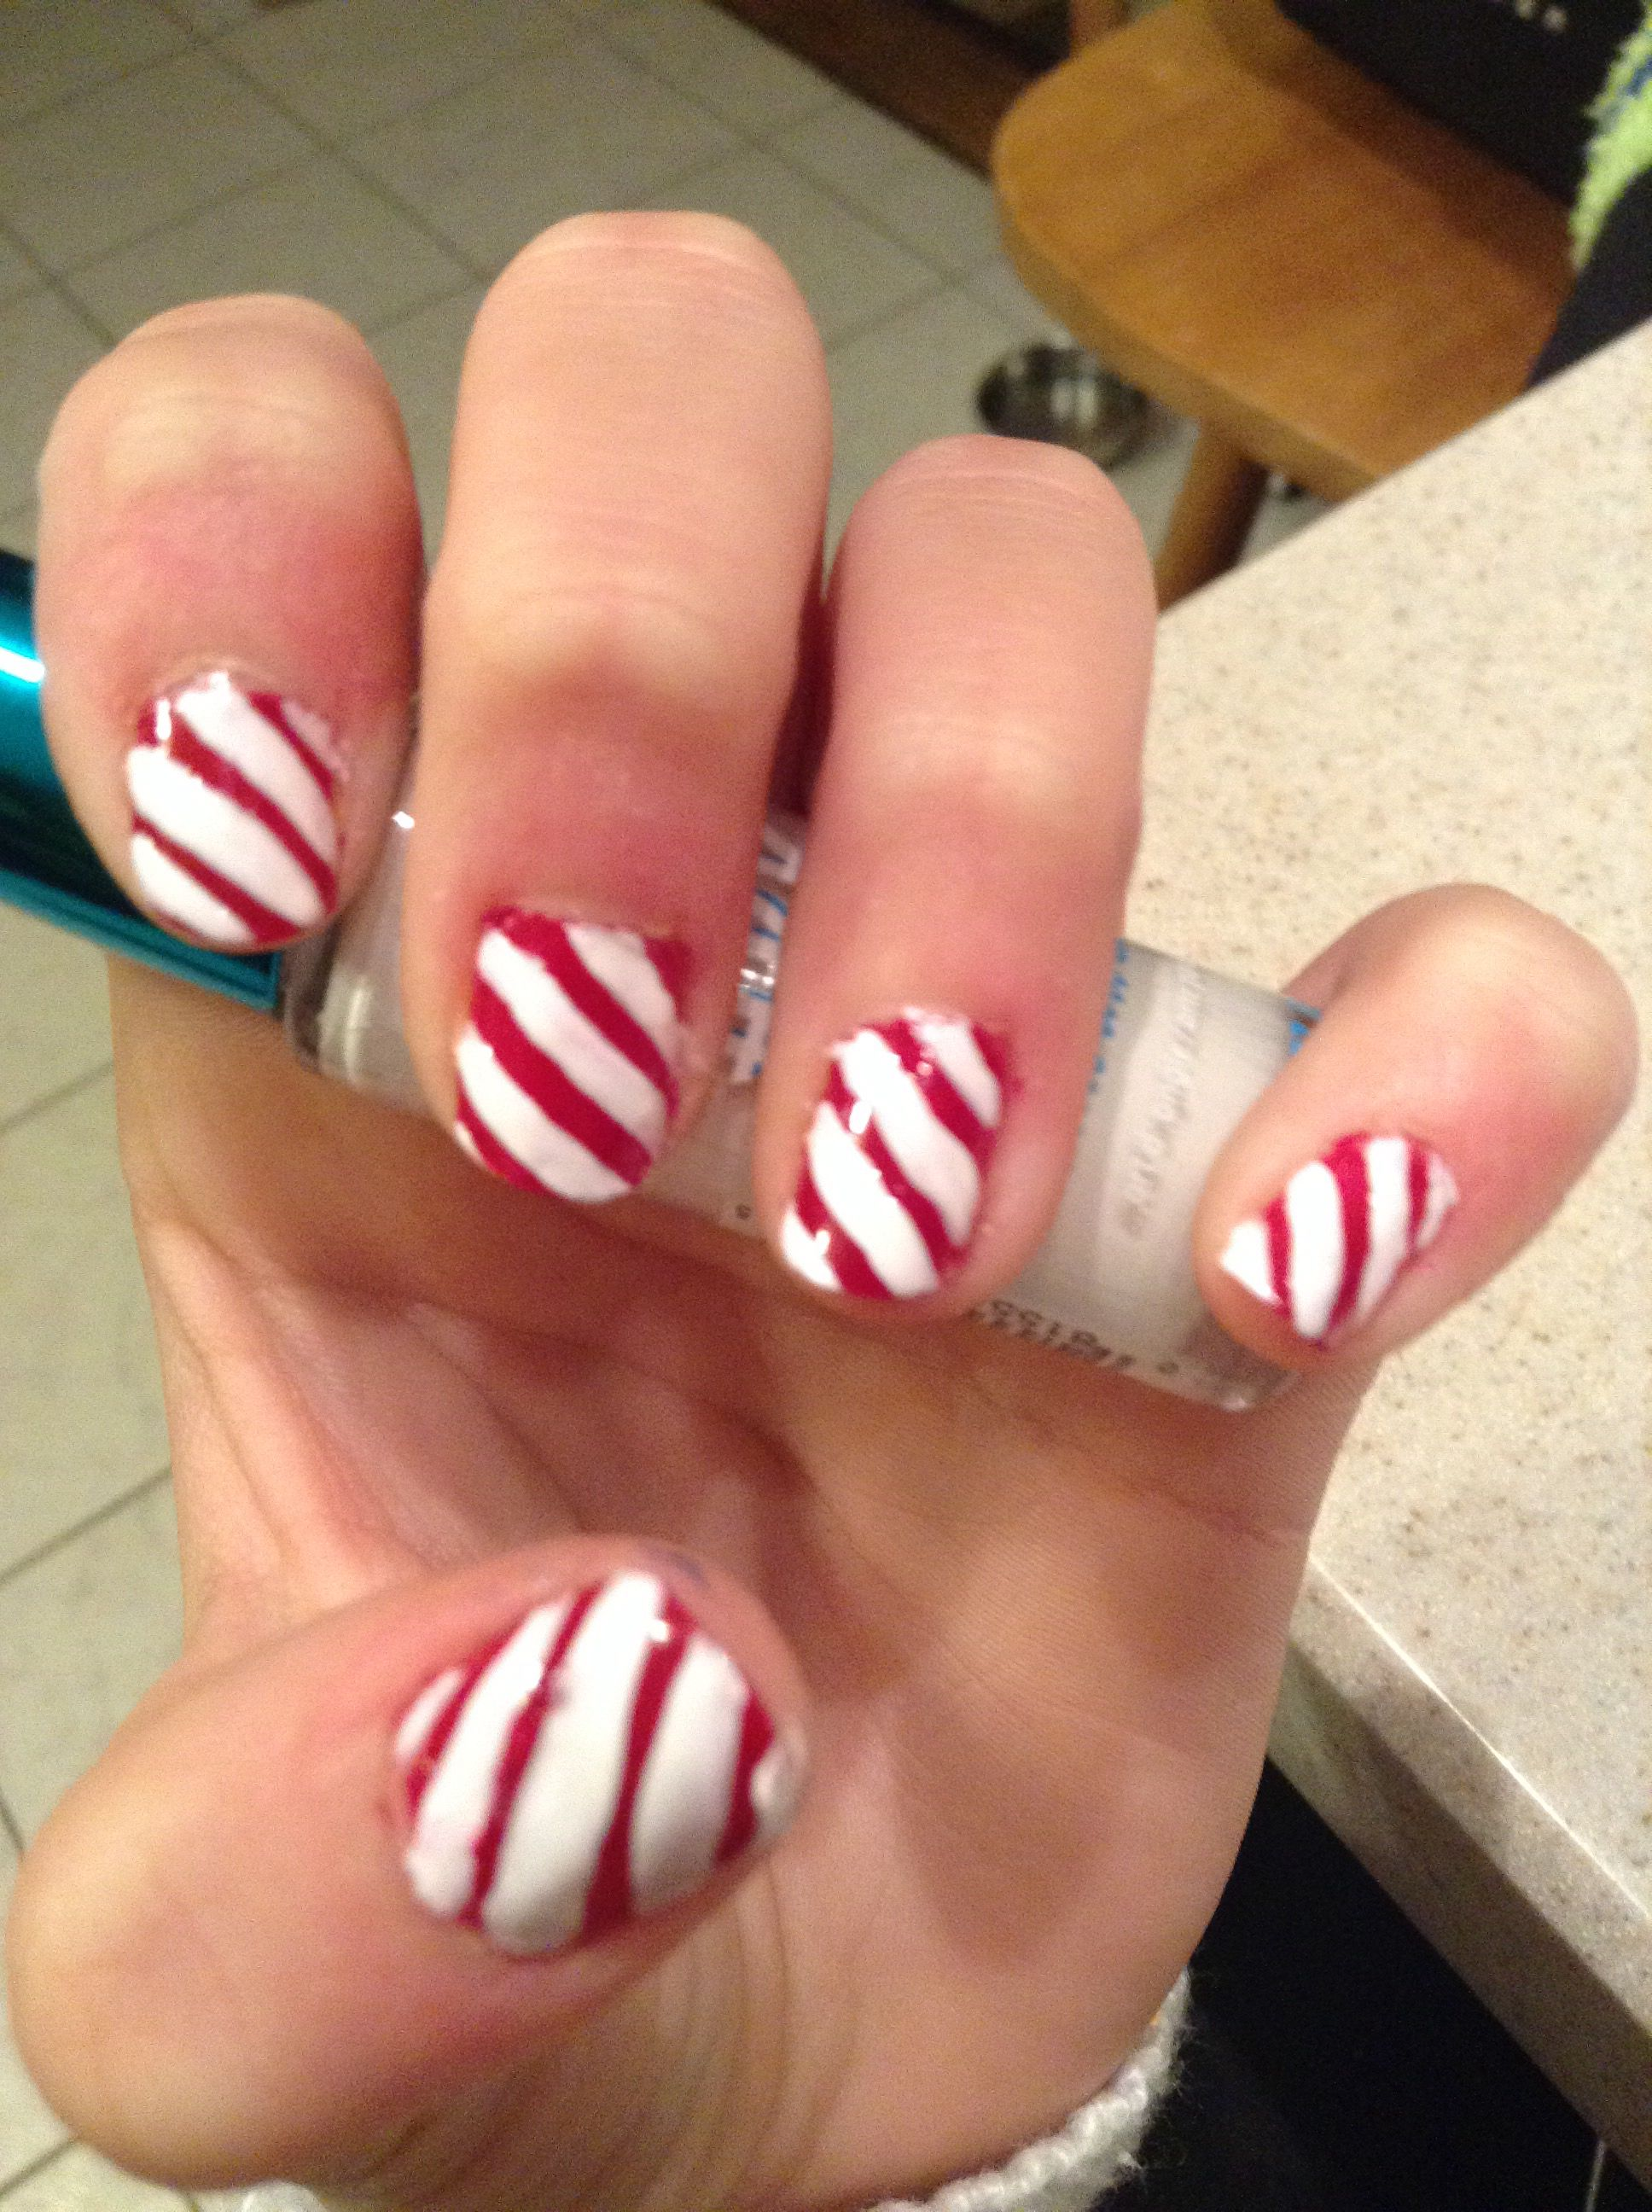 Candy cane nails are perfect for the holidays!